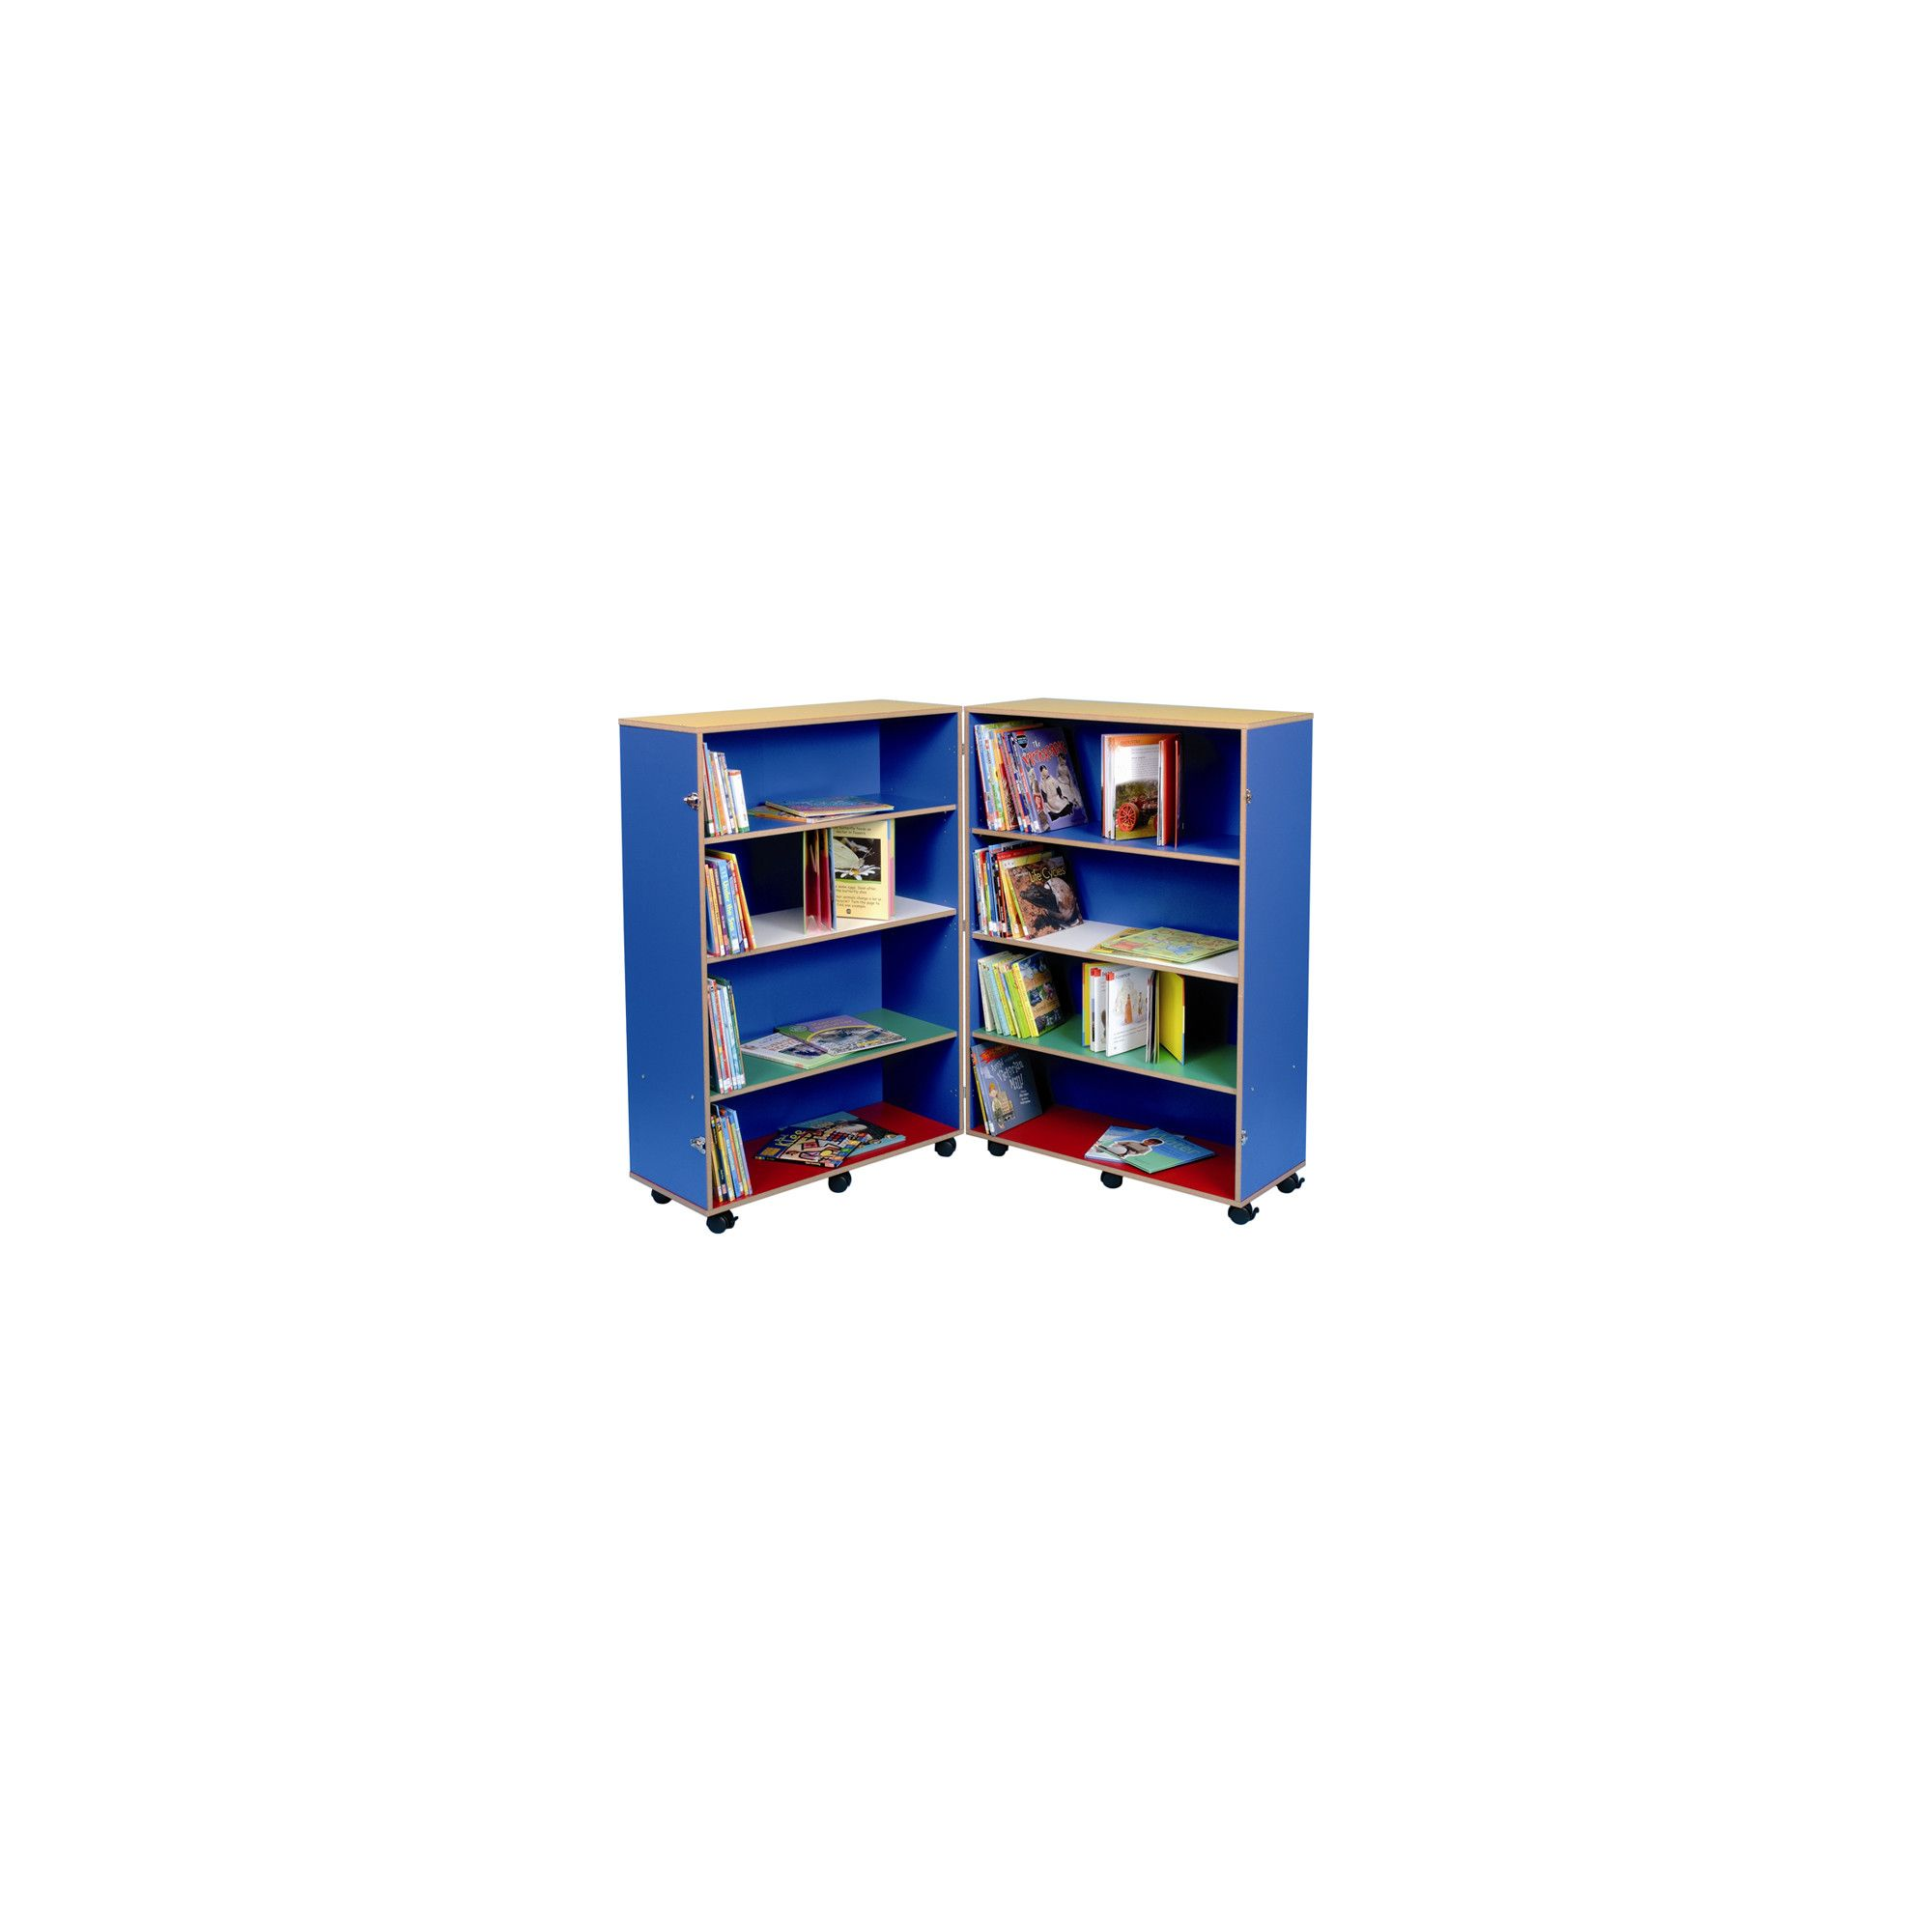 Twoey Toys Hinged Bookcase with Four Shelves - Multi Coloured at Tesco Direct